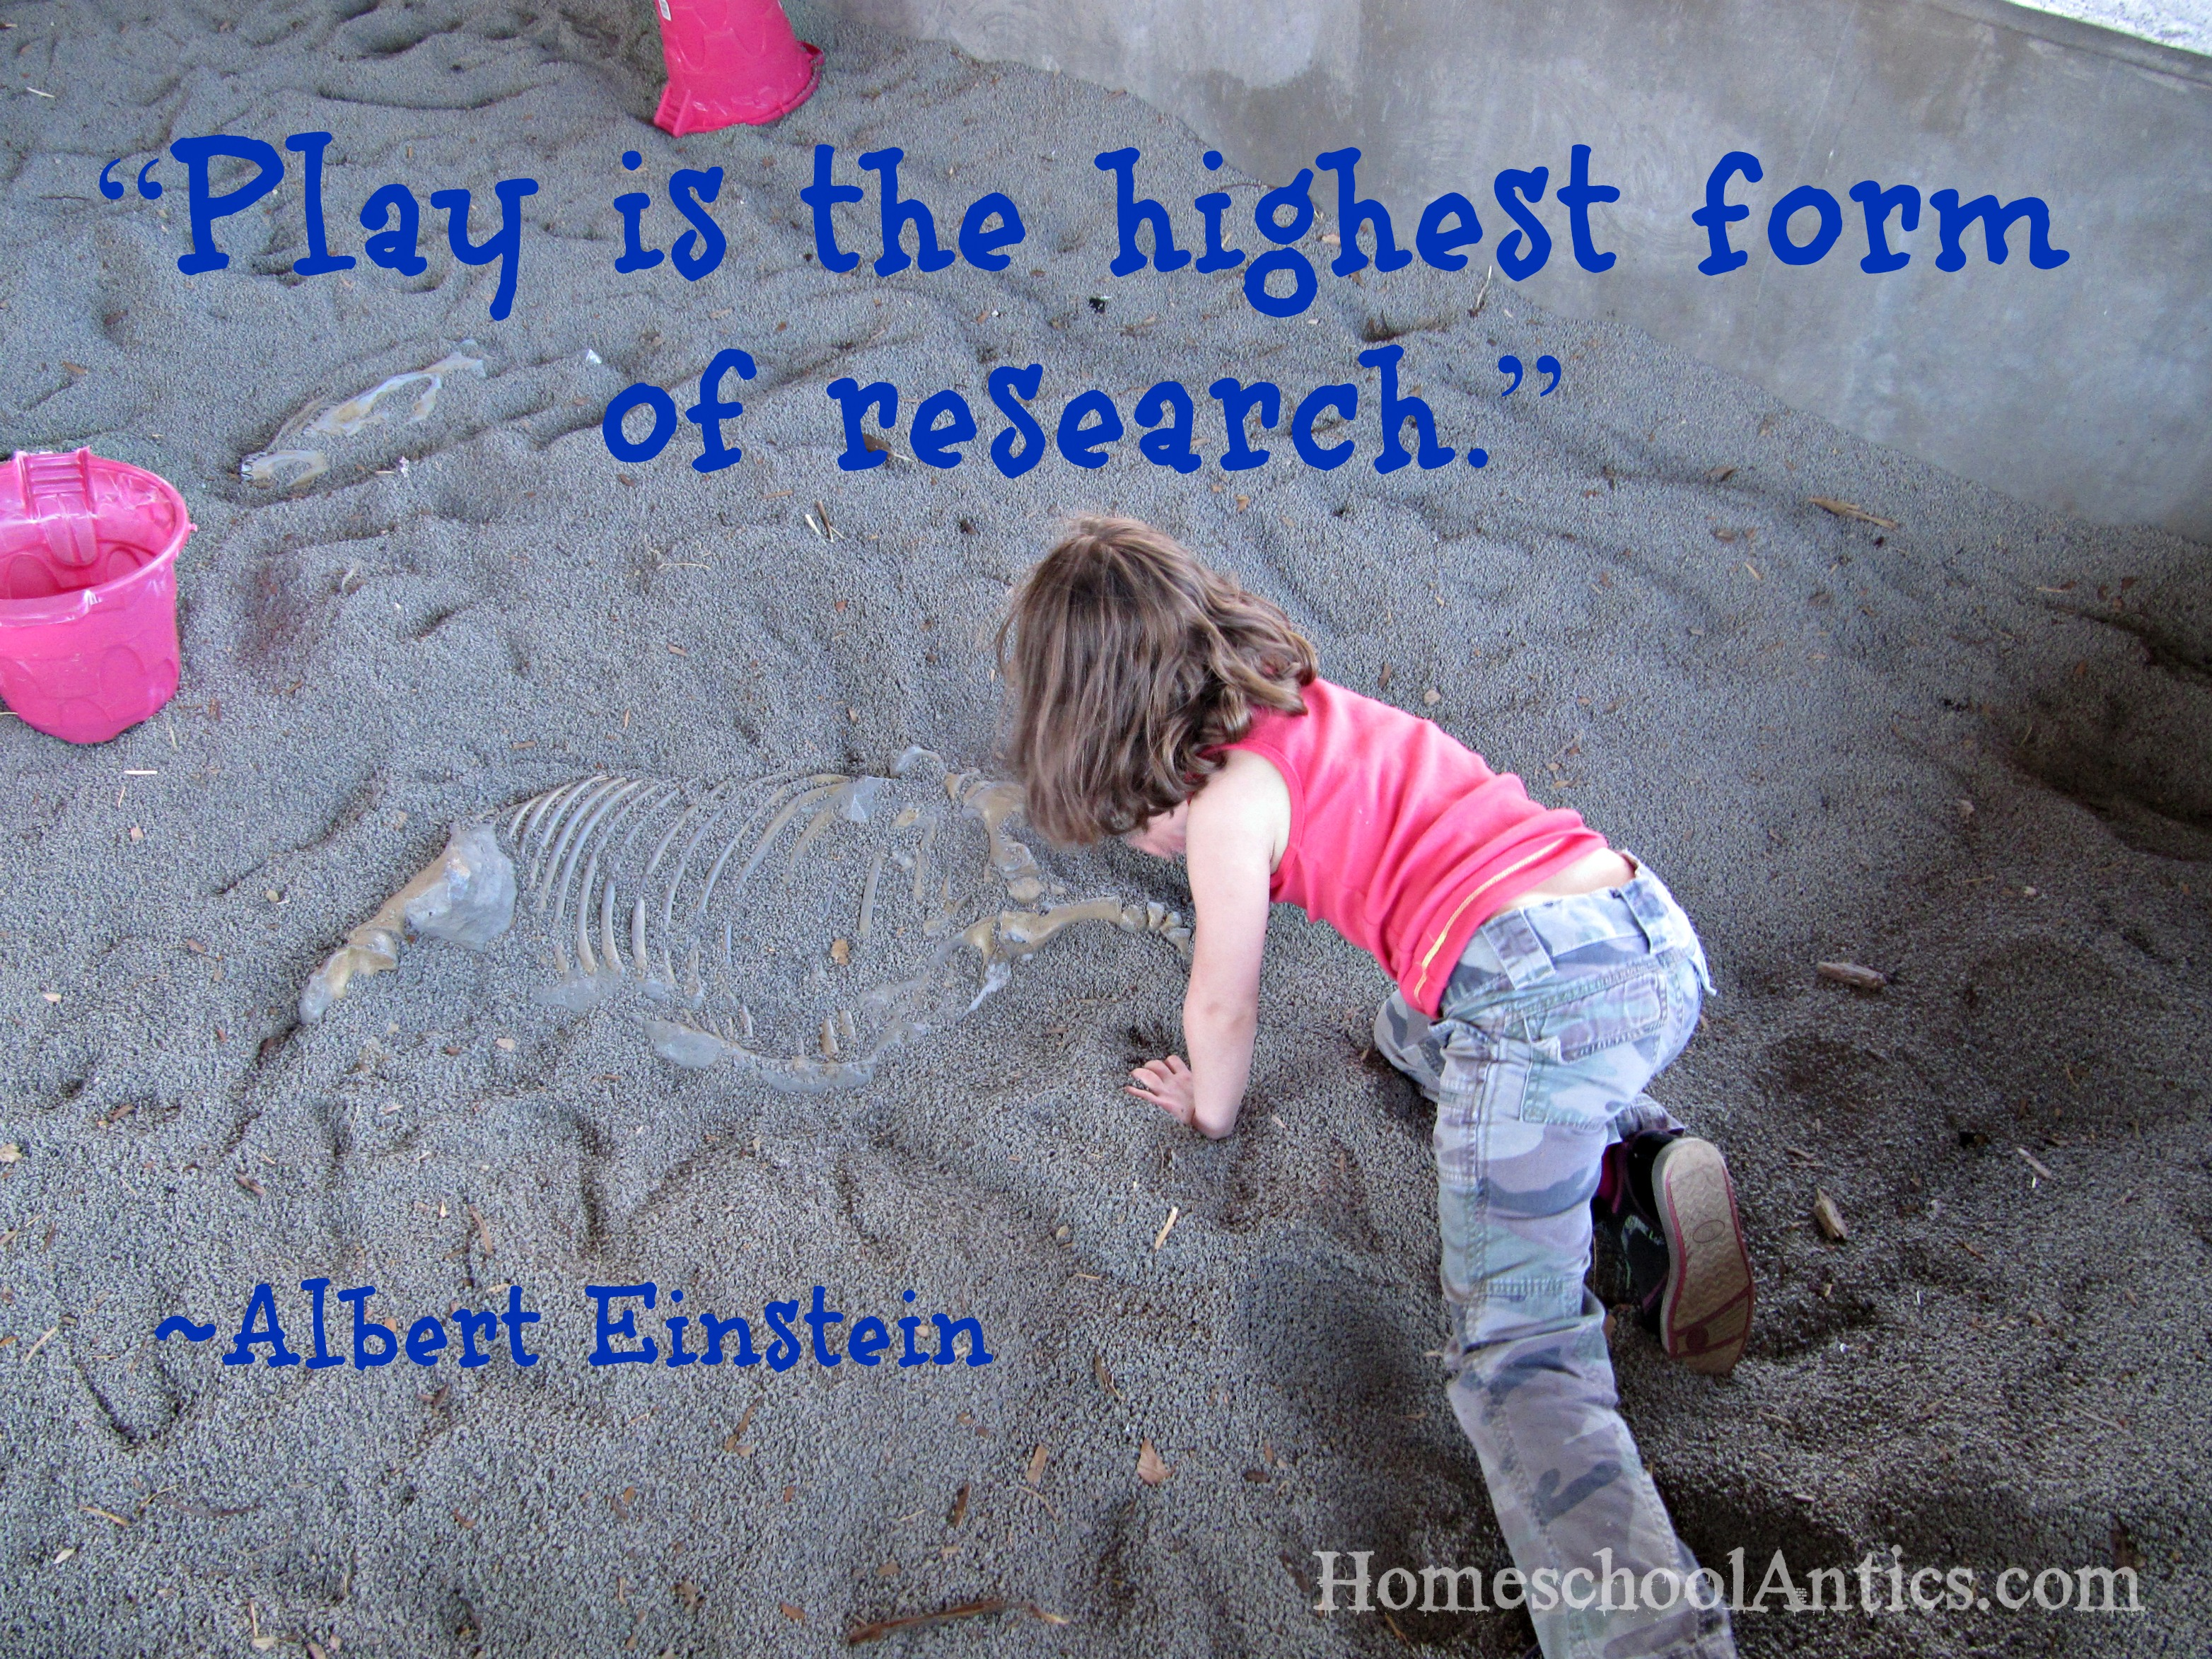 Quotes About Play Einstein Quotes